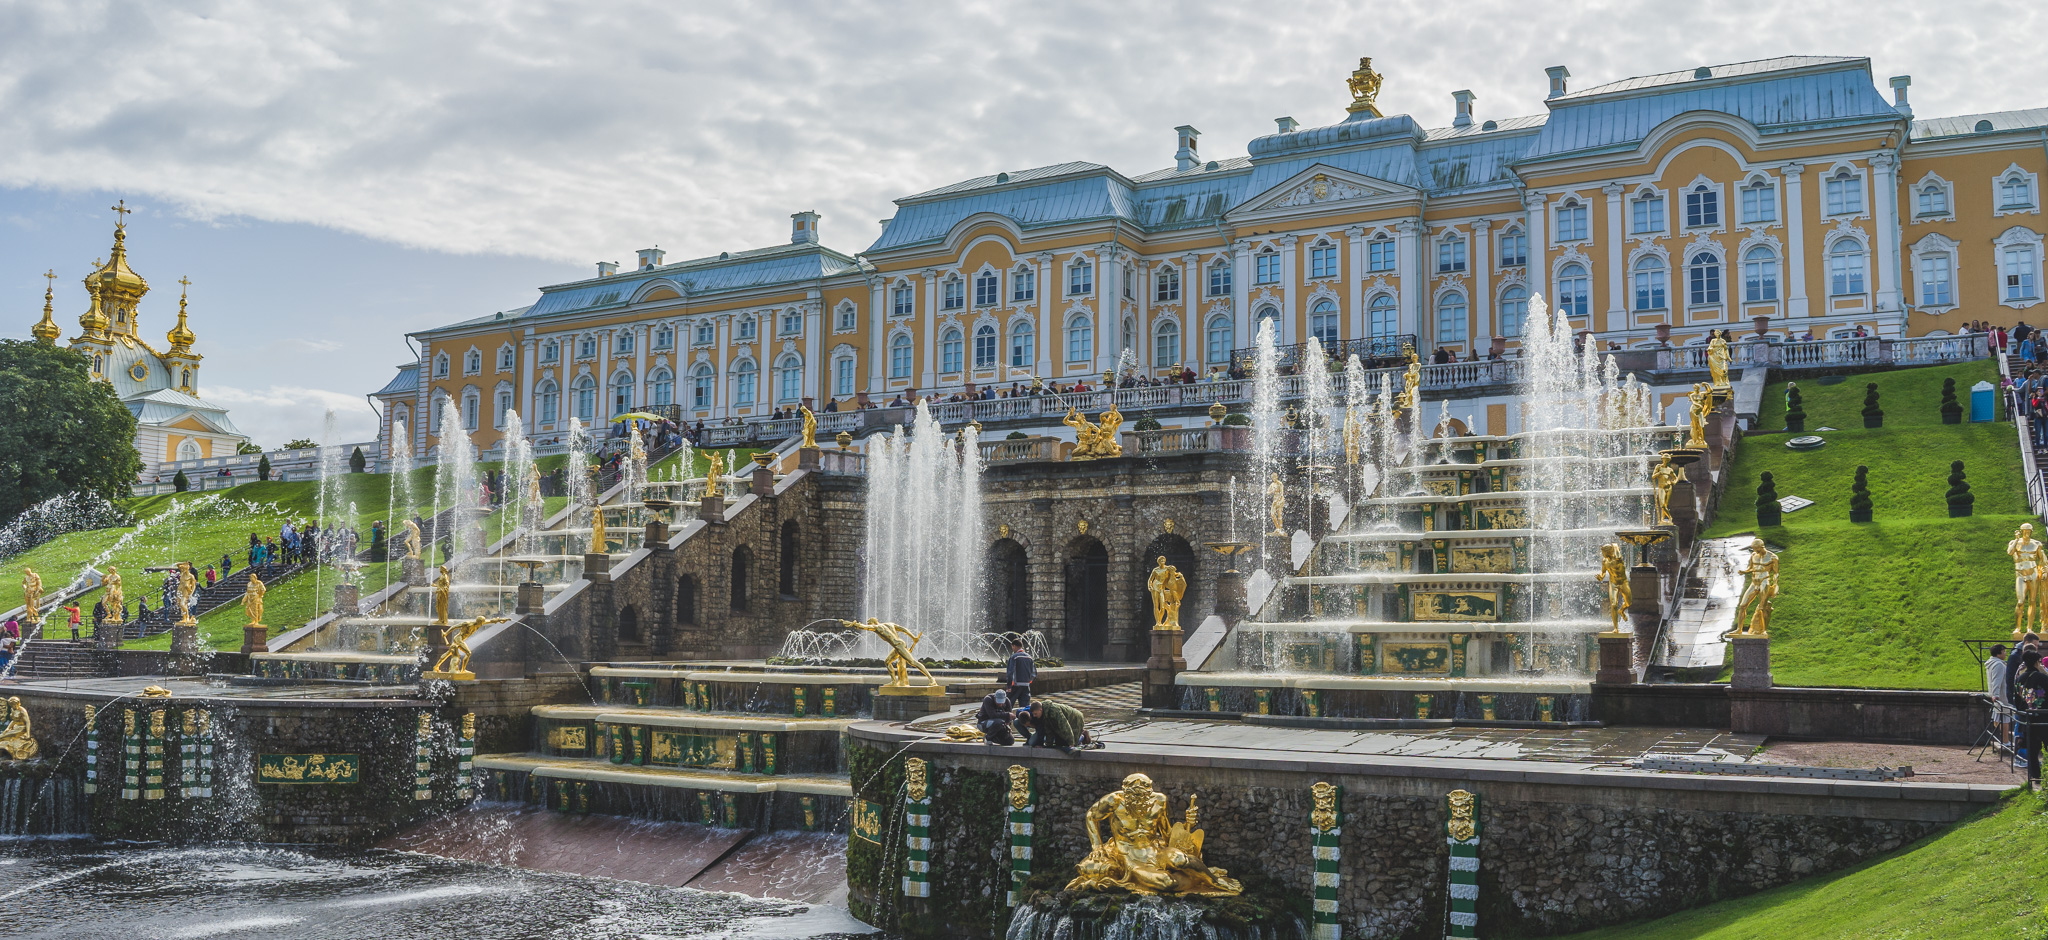 Peterhof Palace near Saint Petersburg